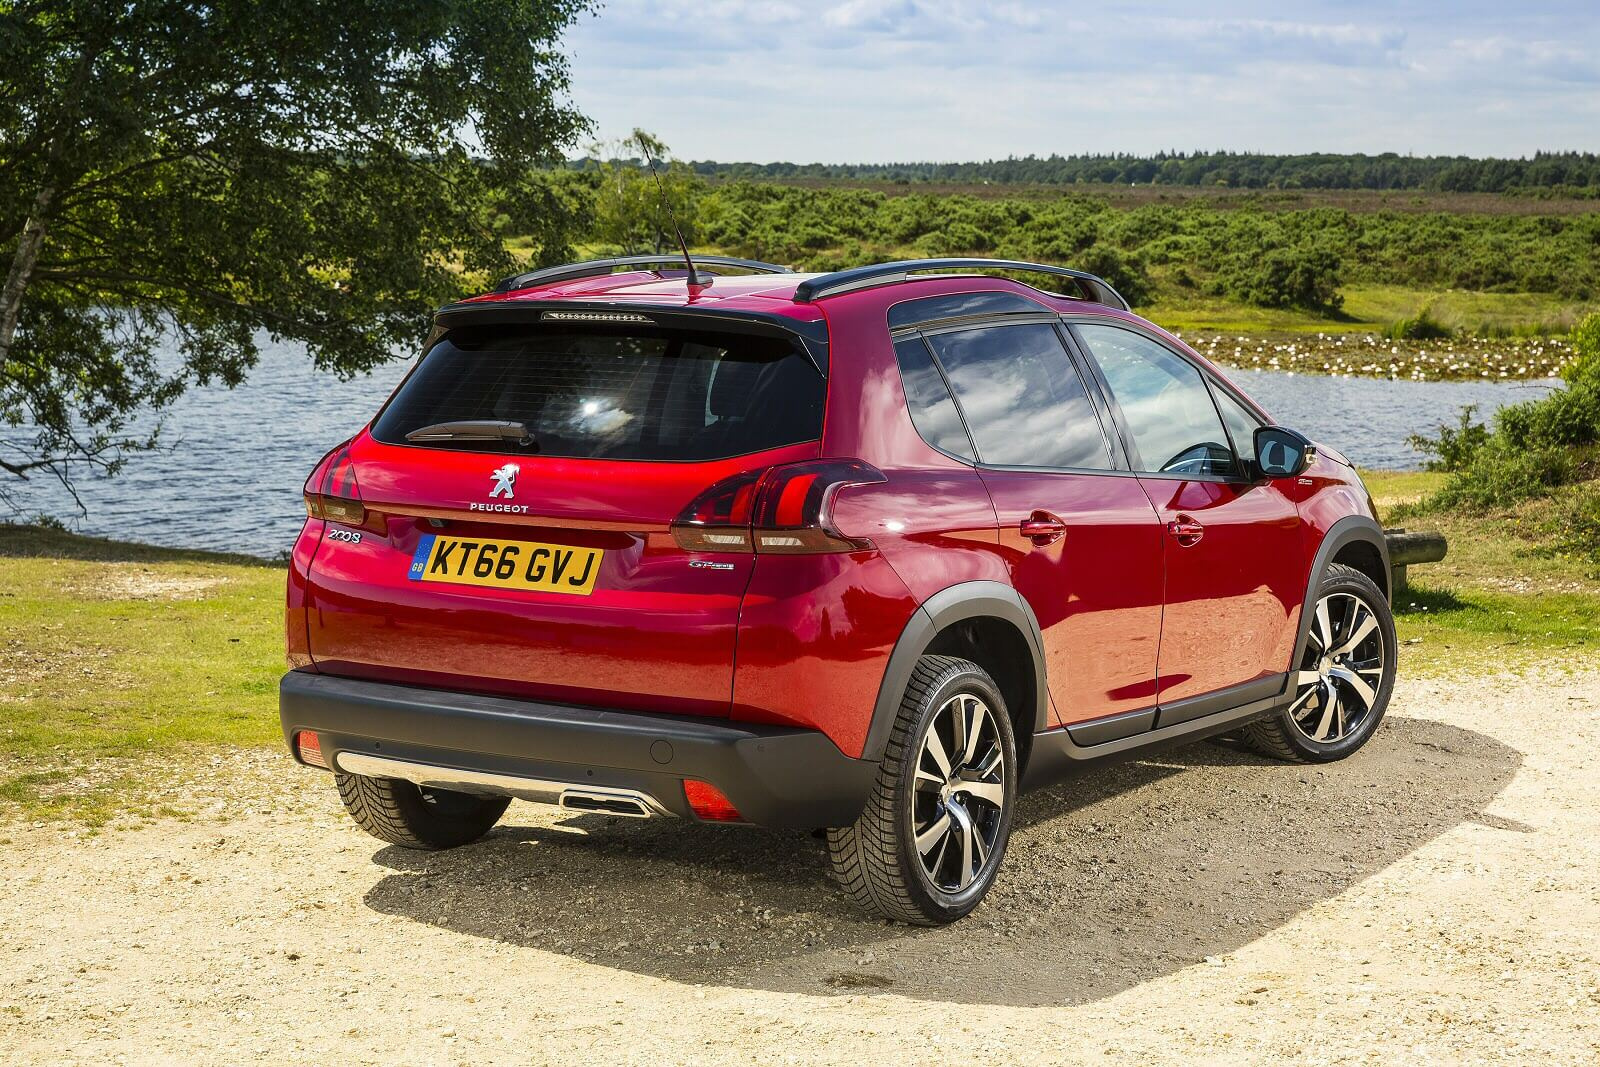 New Peugeot 2008 SUV For Sale